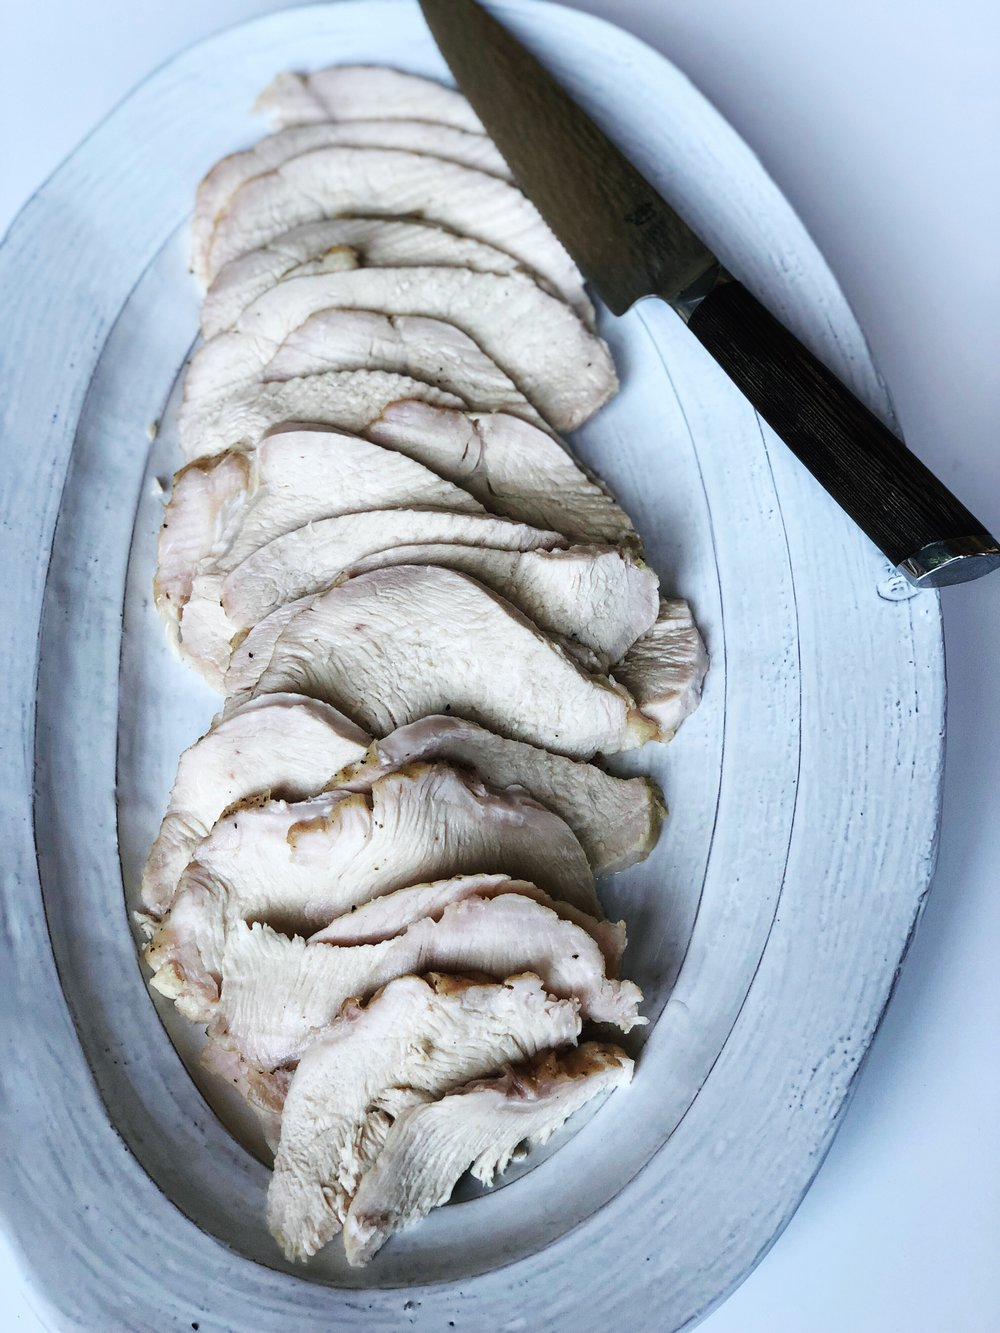 almonds and asana roasted turkey.JPG